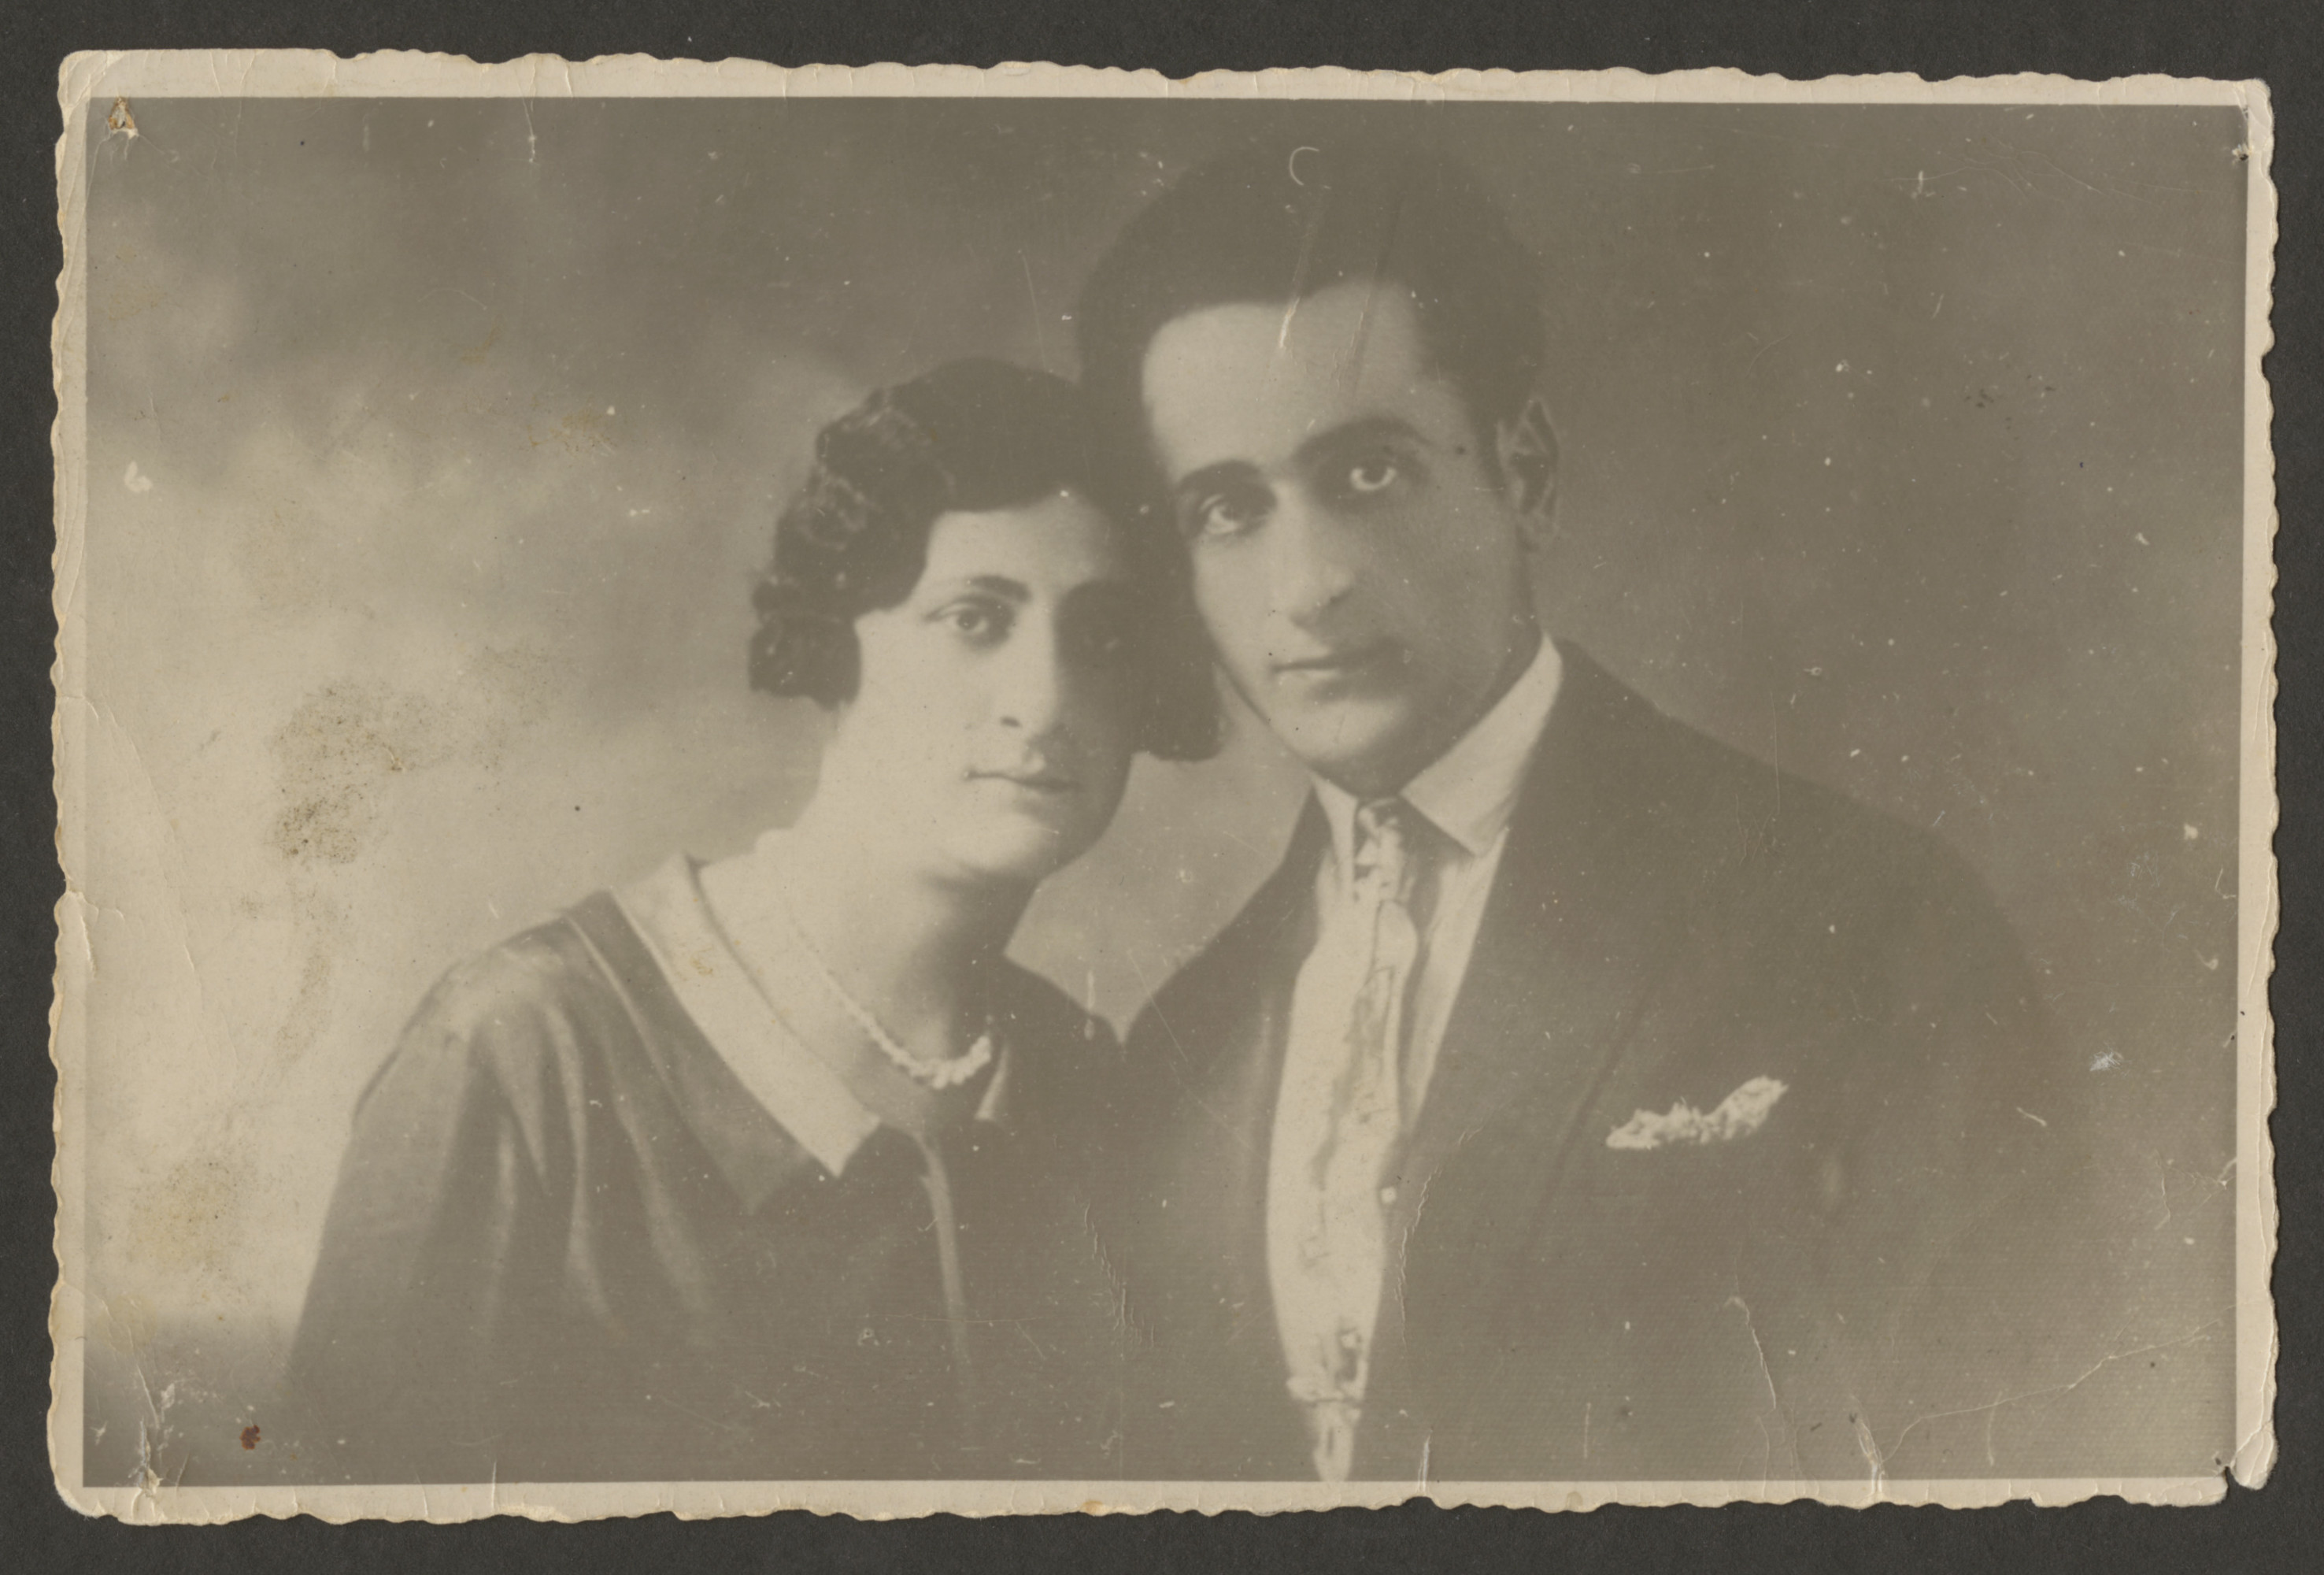 Studio of Motl Liebman (brother of Ann Goldman) and his wife.  both were later murdered in the Holocaust.